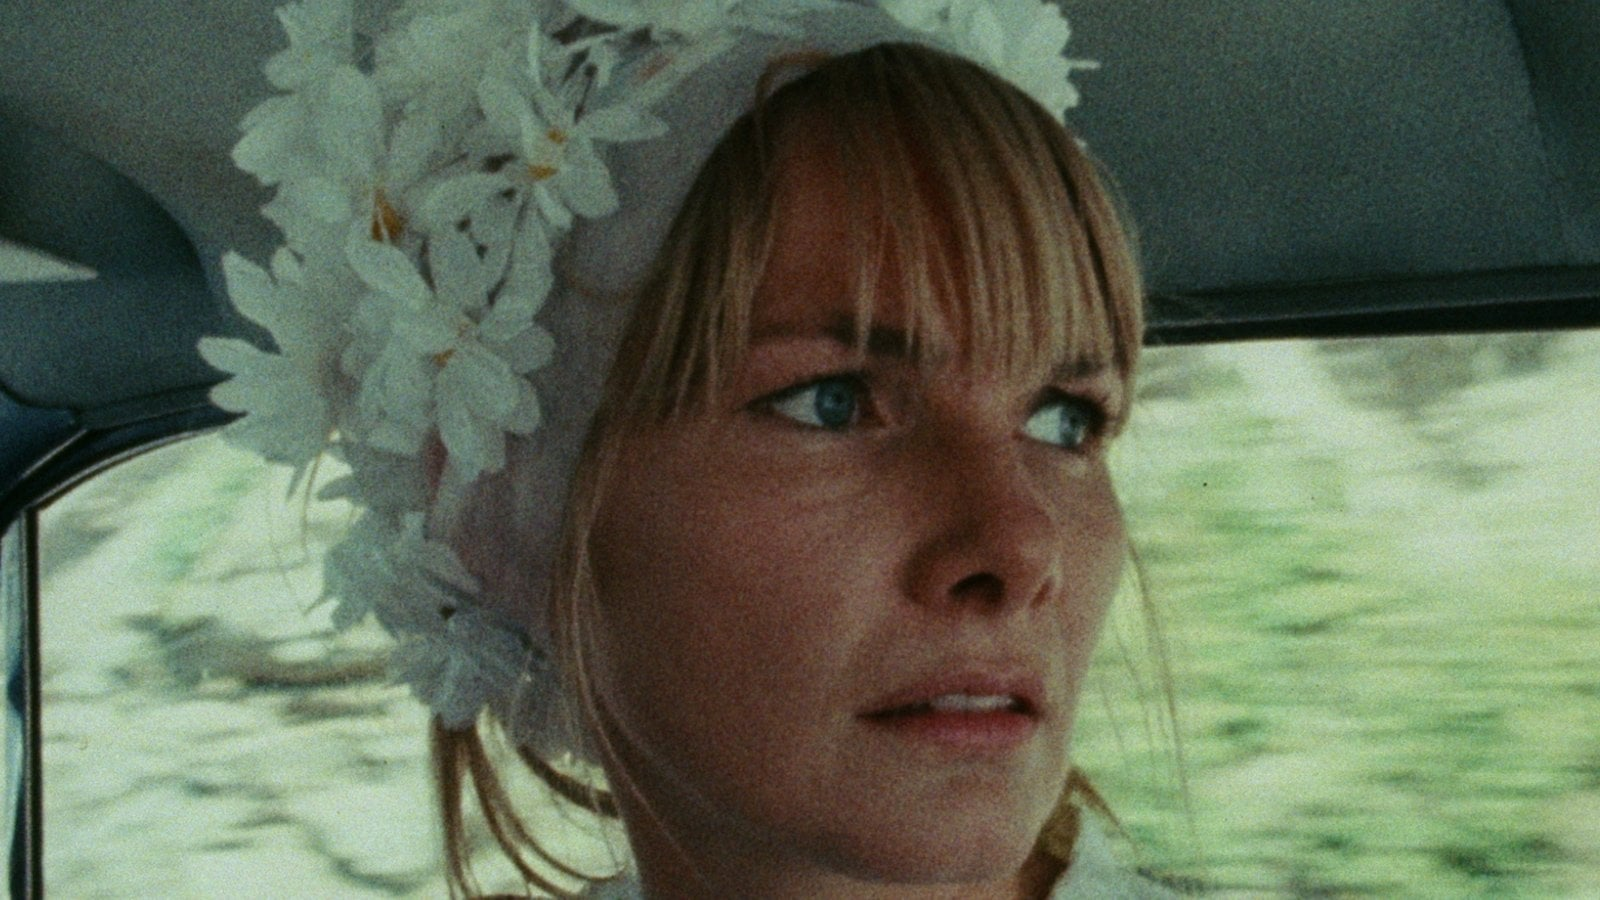 wanda 1971 movie barbara loden waatch